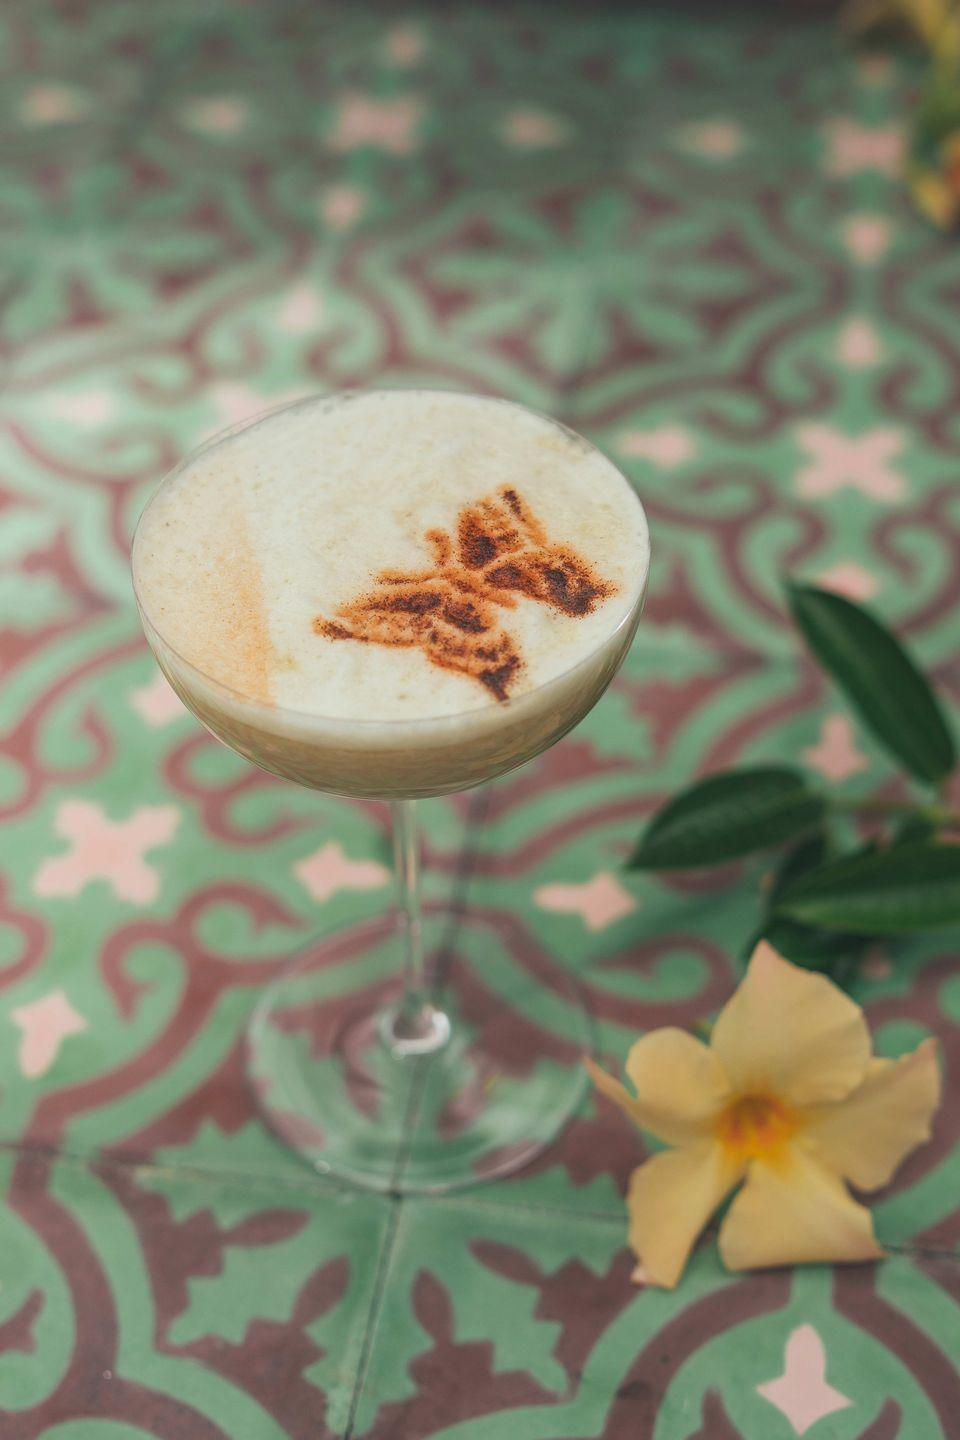 """<p><strong>Ingredients:</strong></p><p>1.5 oz Hennessy Black<br>.25 oz Ancho Reyes chili Liqueur<br>.25 oz Grand Marnier<br>.25 oz simple syrup<br>.5 oz Fresh Lime juice<br>1 egg white<br>2 dashes chocolate bitters</p><p><strong>Instructions:</strong></p><p>Add all ingredients to a shaker tin with ice, shake to chill, strain into a coupe glass and spray stencil image over the foam on top.</p><p><em>Created by <a href=""""https://www.hennessy.com/en-int"""" rel=""""nofollow noopener"""" target=""""_blank"""" data-ylk=""""slk:Hennessy"""" class=""""link rapid-noclick-resp"""">Hennessy</a></em><br></p>"""